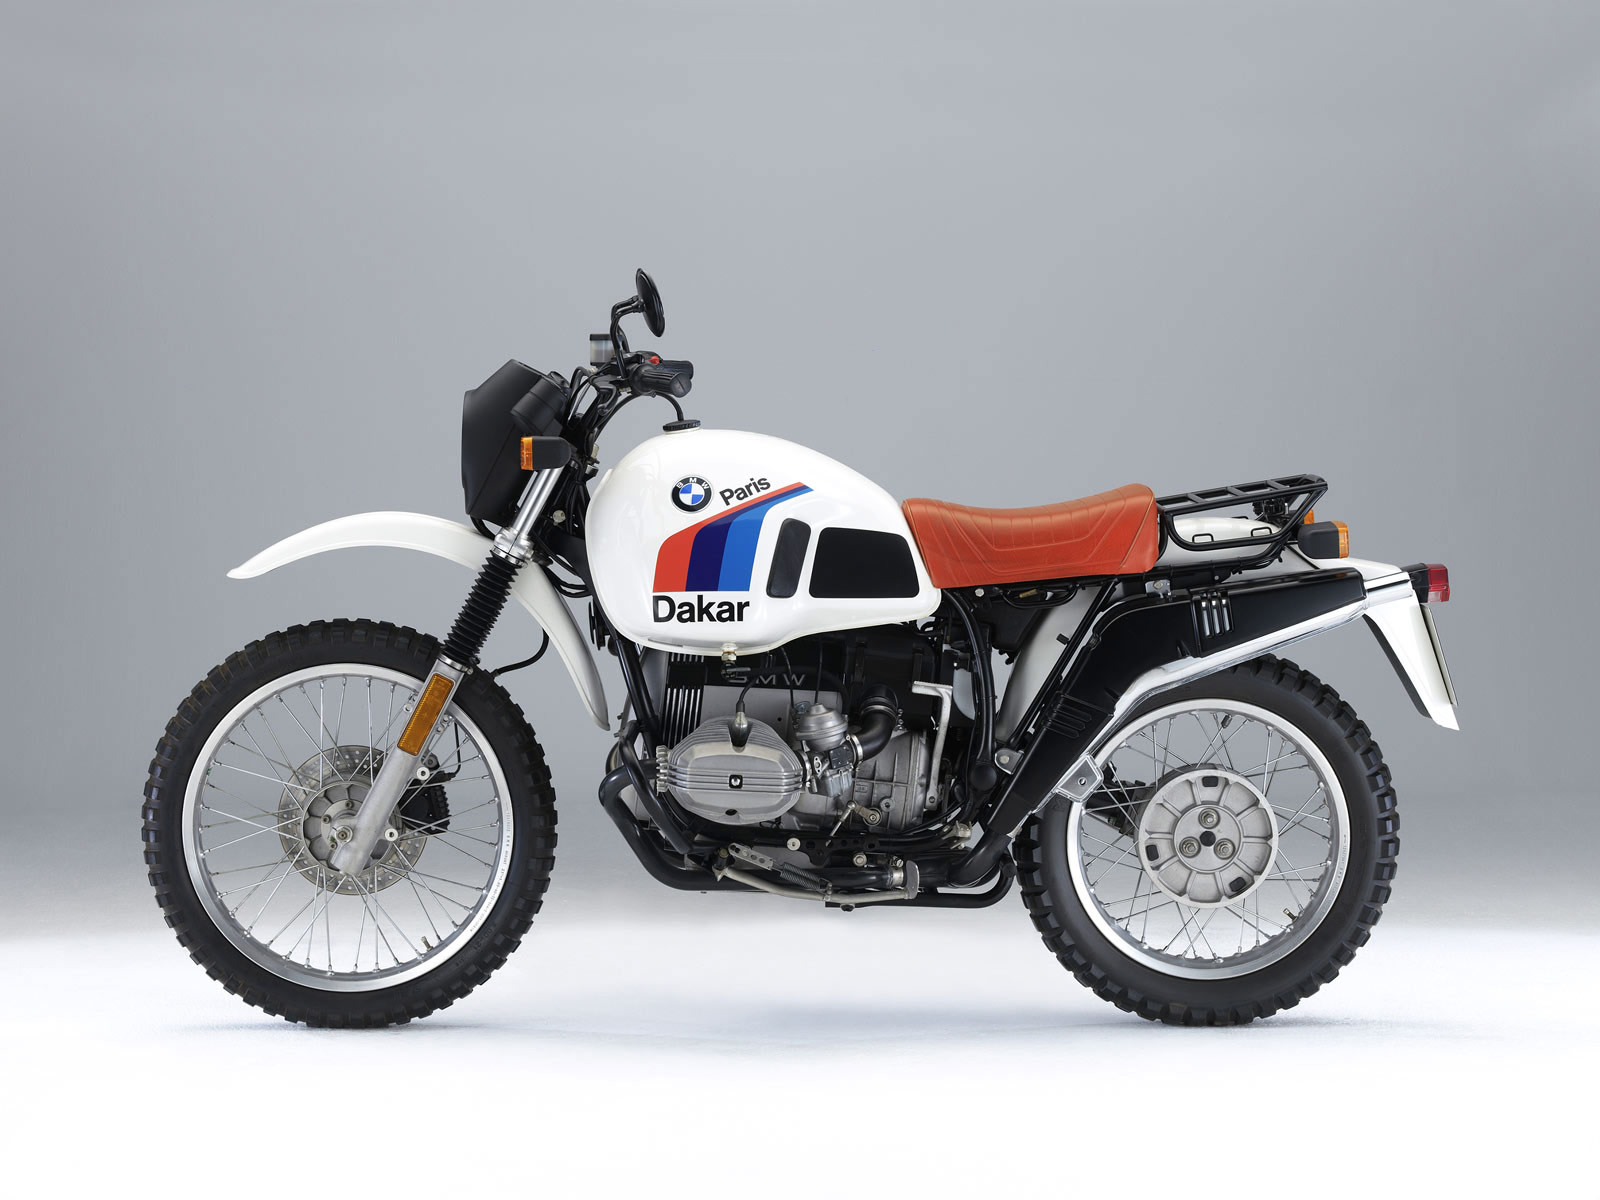 Types Of Car Insurance Coverage >> 2010 BMW R80GS Paris Dakar motorcycle wallpapers